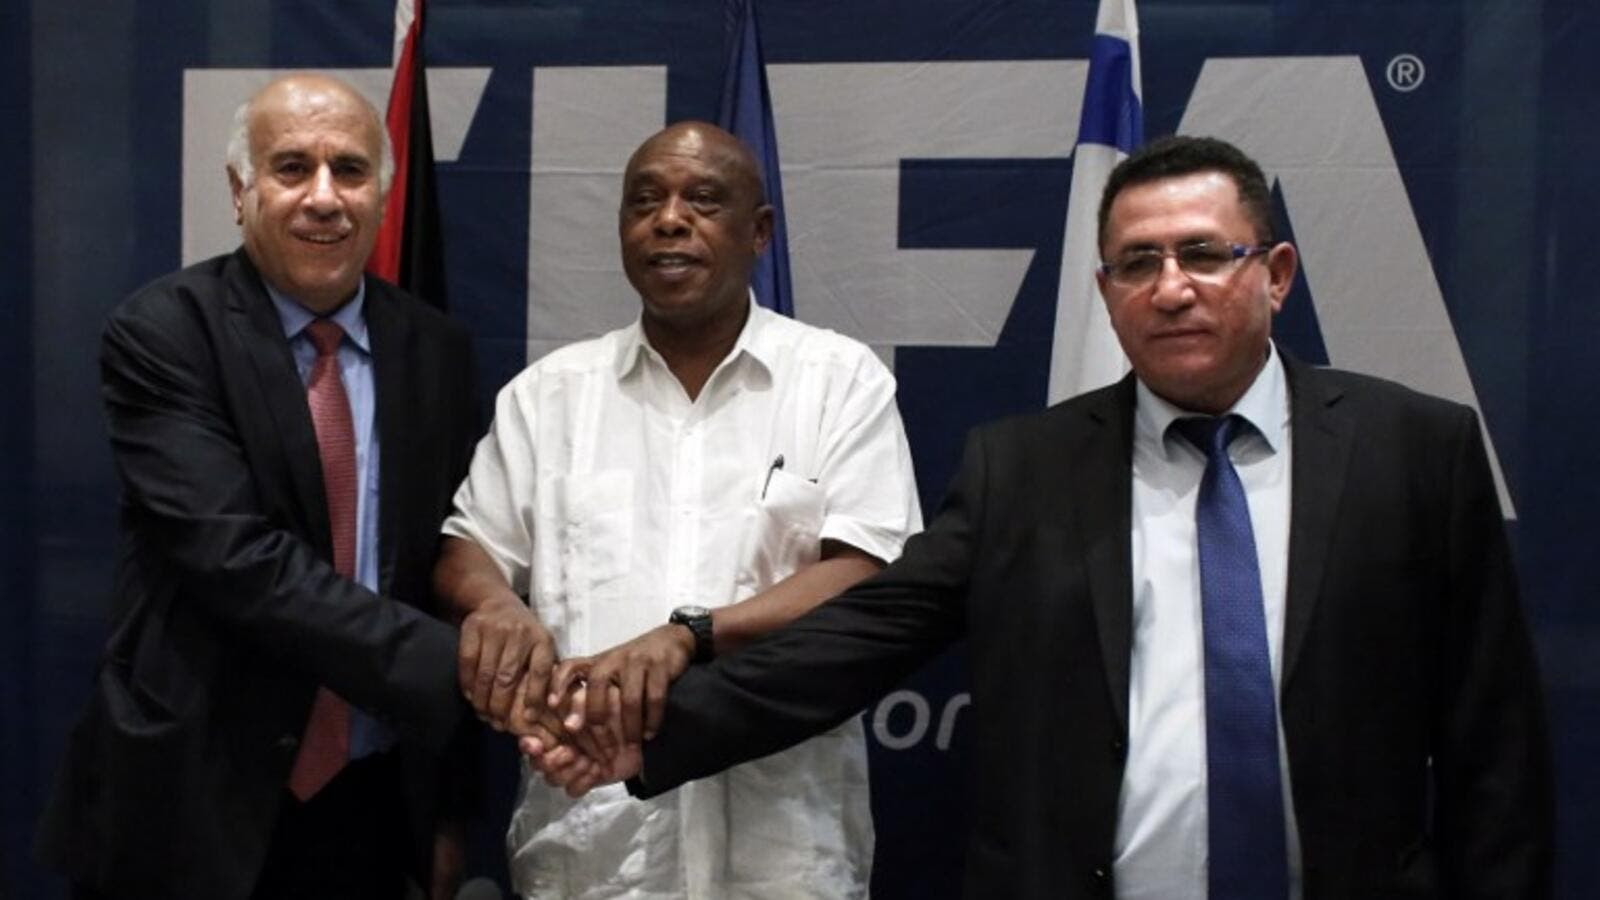 (From L-R) Palestinian Football Association president Jibril Rajoub, Chairman of the FIFA Monitoring Committee Israel-Palestine Tokyo Sexwale and Israel's Football Association president Ofer Eini, shake hands at the end of a press conference in the West Bank city of Jericho. AFP PHOTO / THOMAS COEX